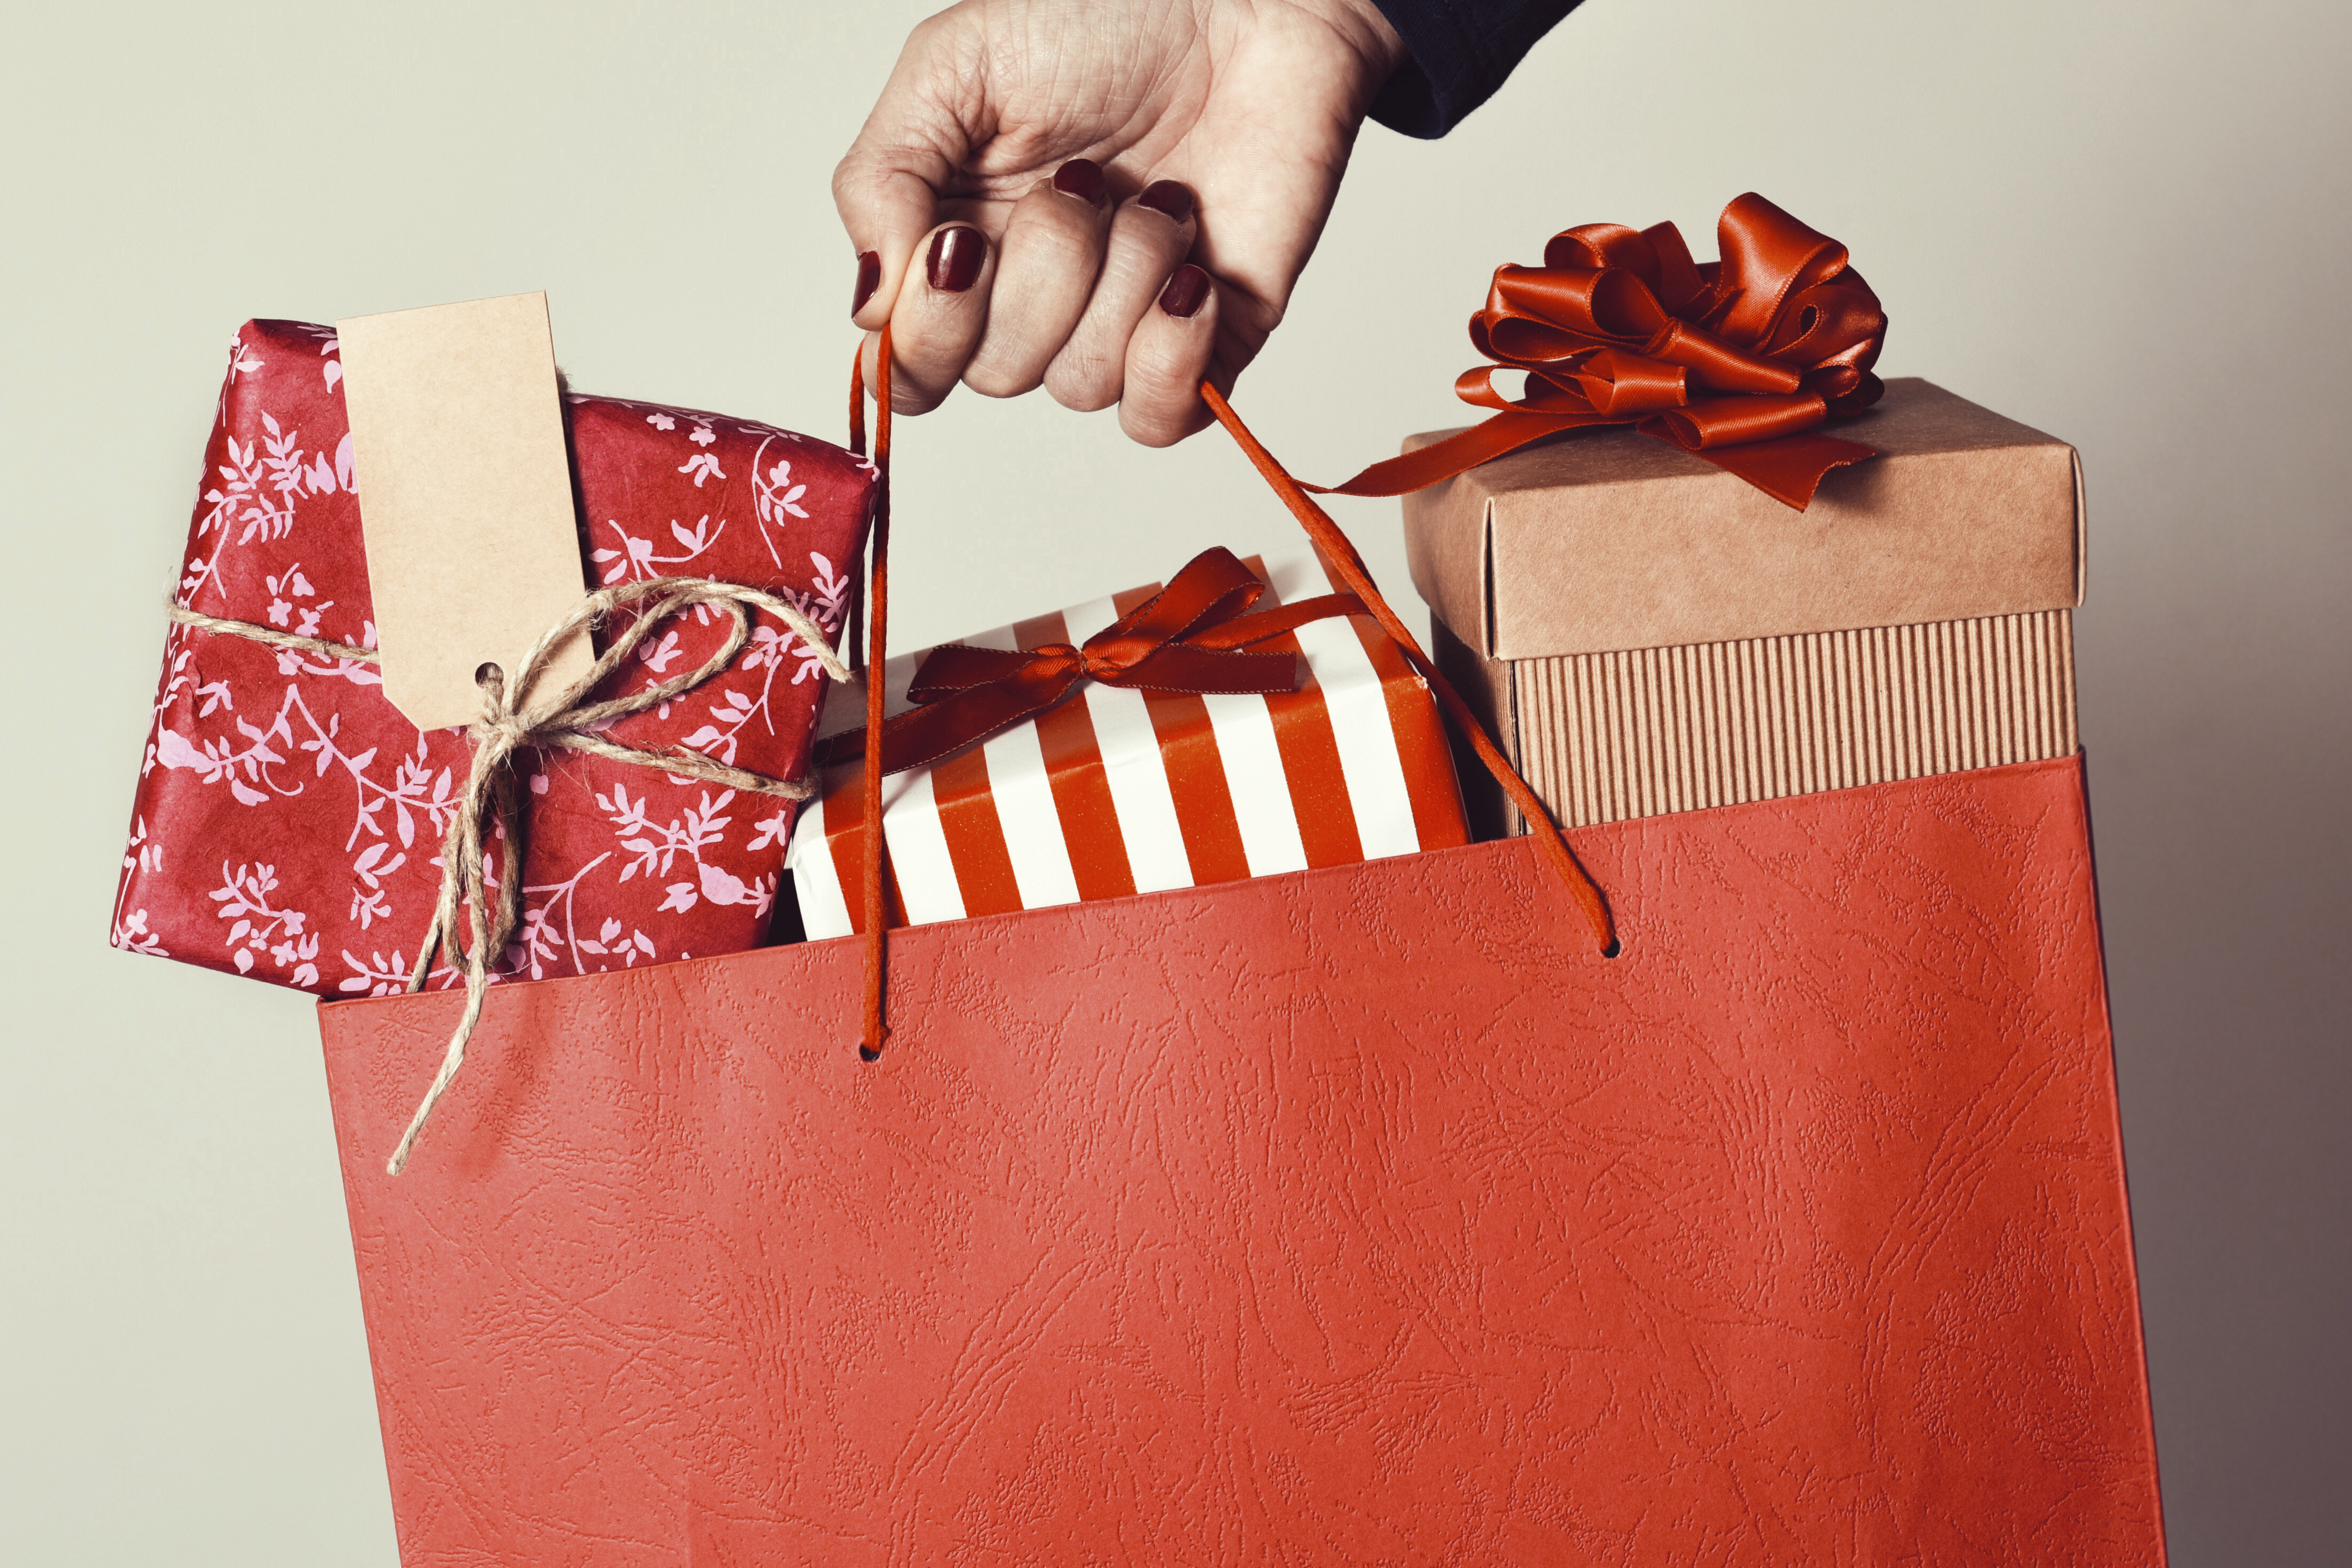 buying presents can make you instantly happy